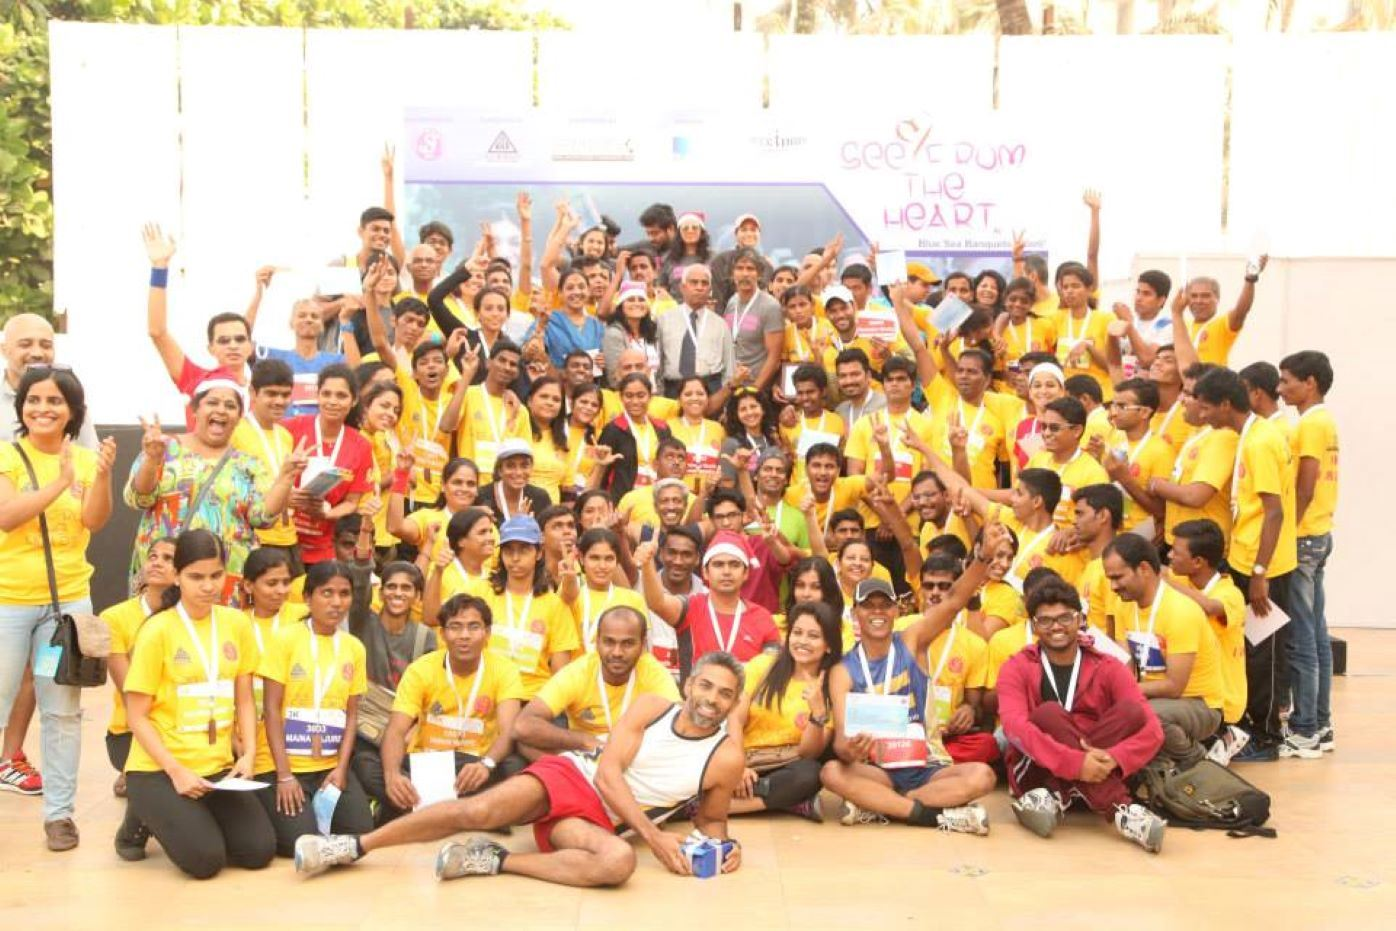 See From The Heart Marathon - Mumbai